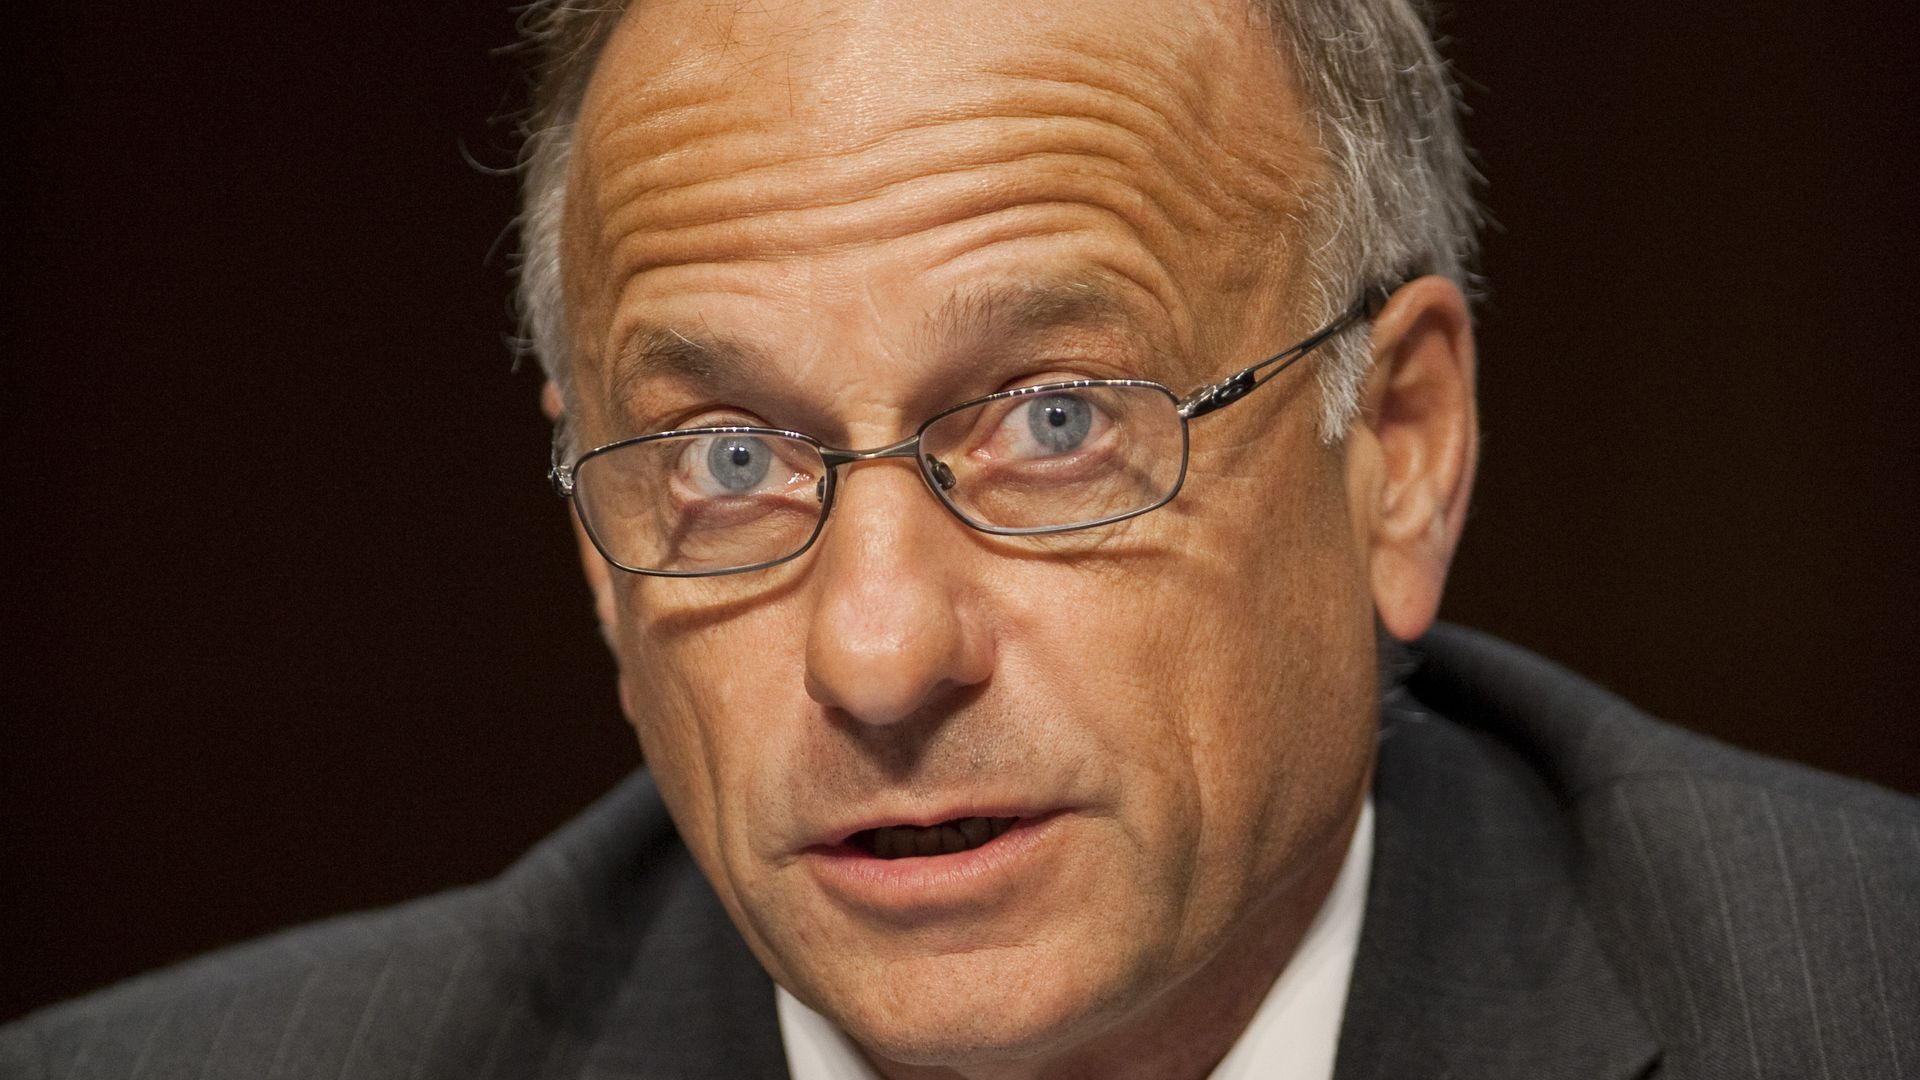 Steve King looking surprised.